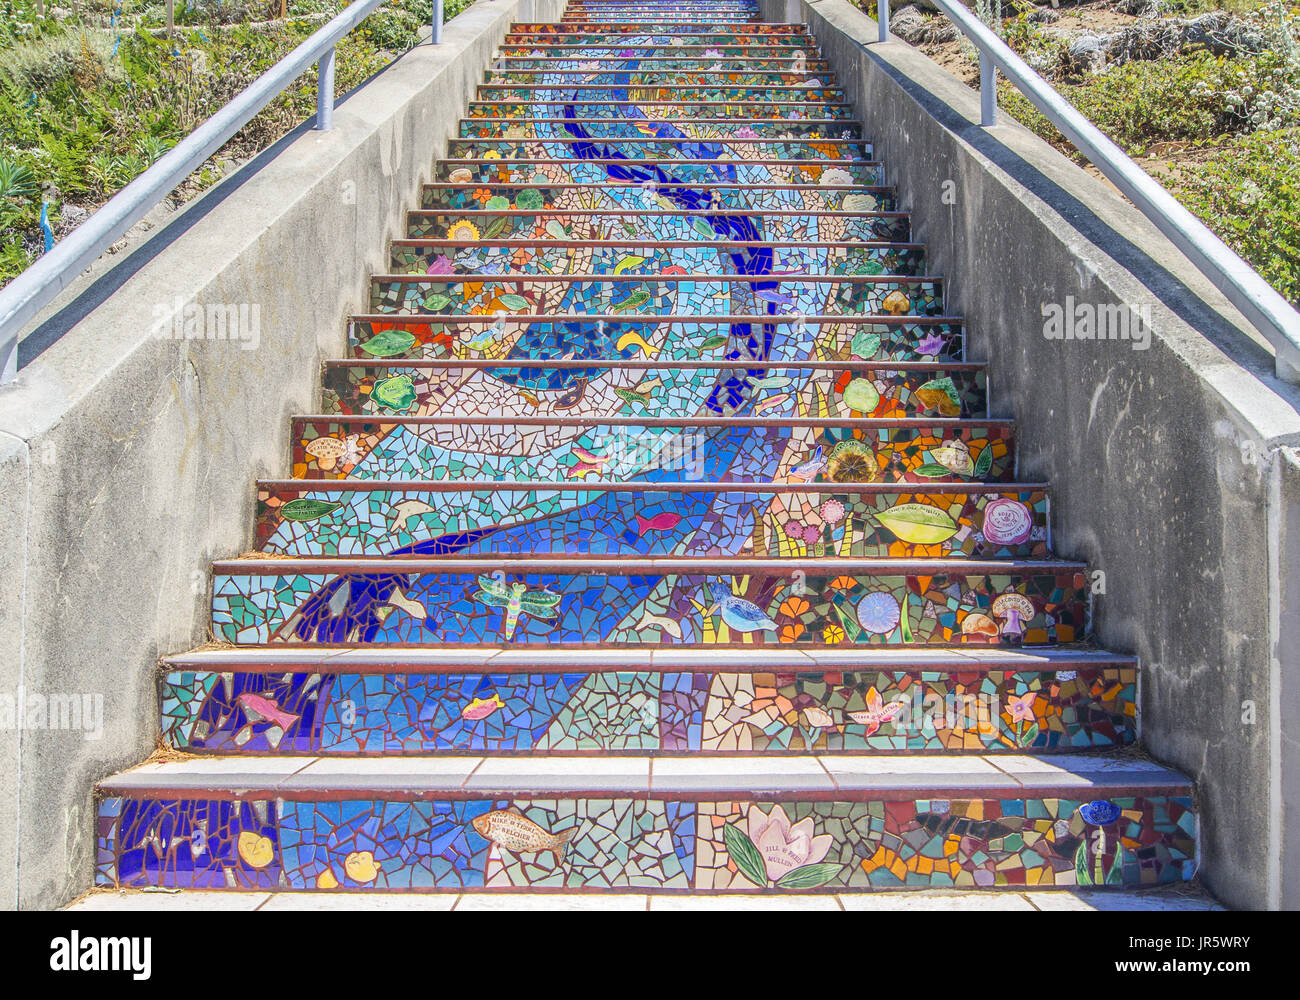 Detail Of The Golden Gates Stairs Mosaic, The 16th Avenue Tiled Steps  Project, San